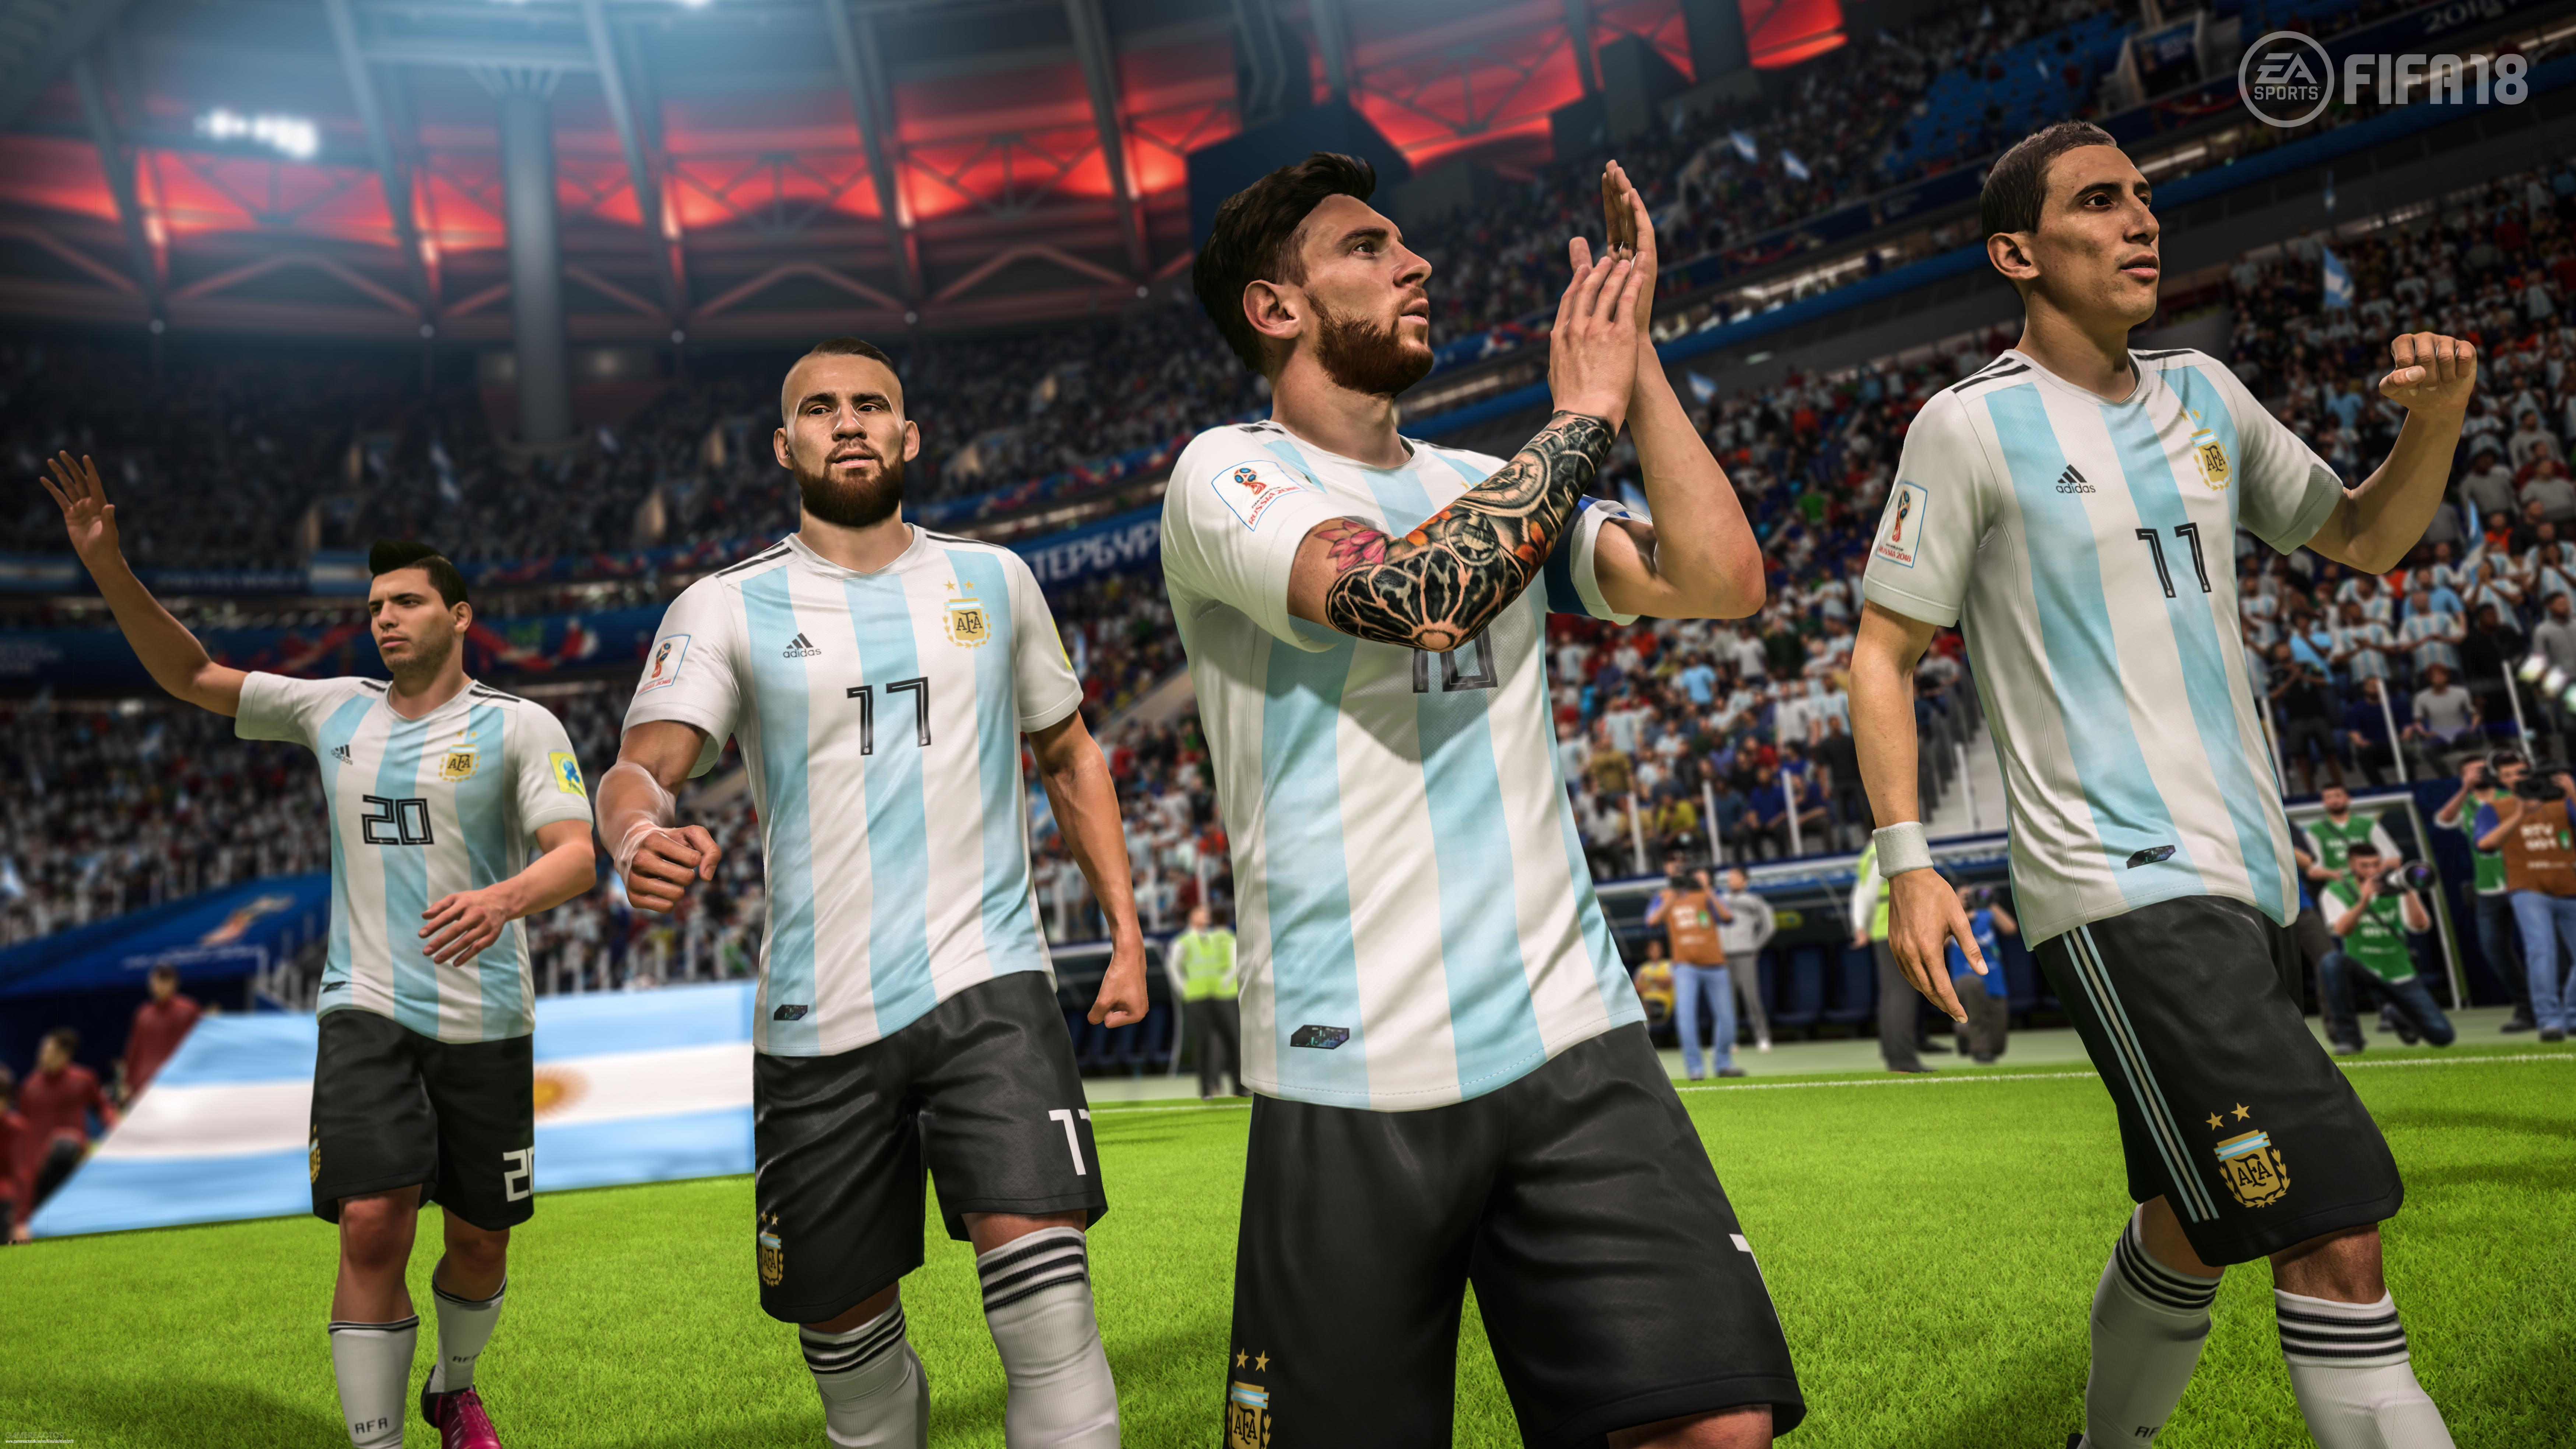 974daddc1 2018 FIFA World Cup Russia Review - Gamereactor - FIFA 18 - Gamereactor